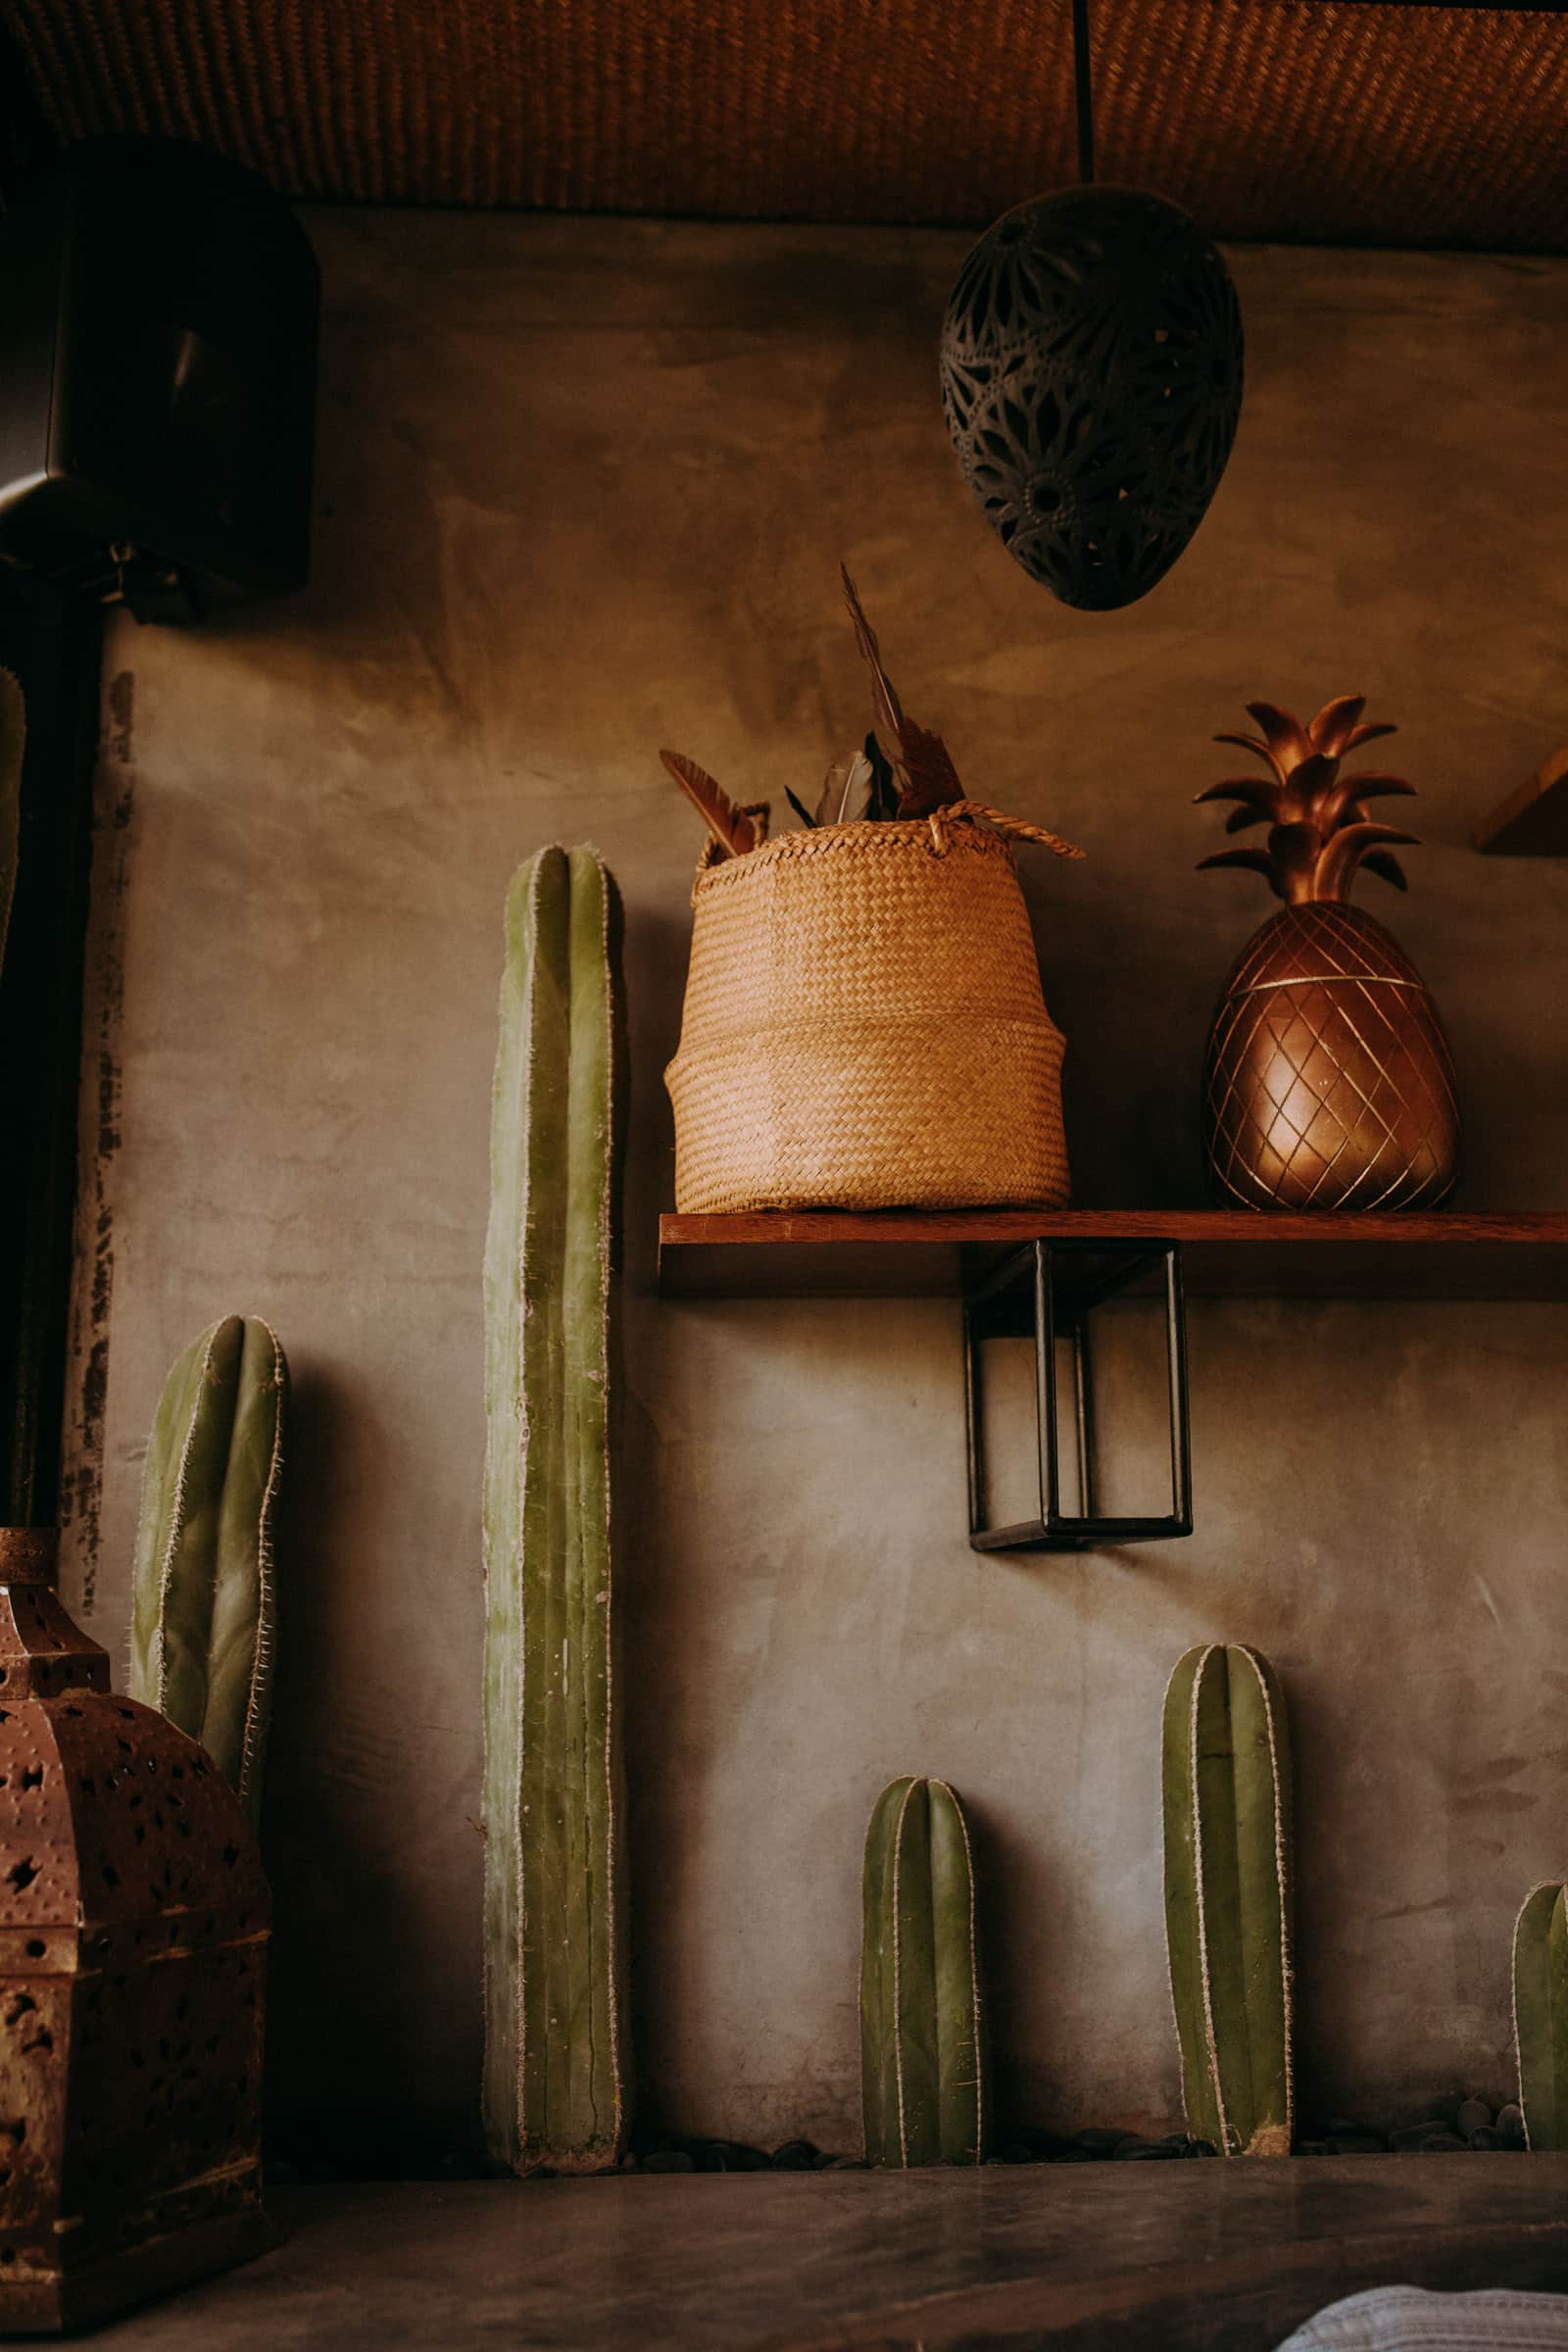 The acre baja wedding decoration includes cacti, a shelf and potted plants.